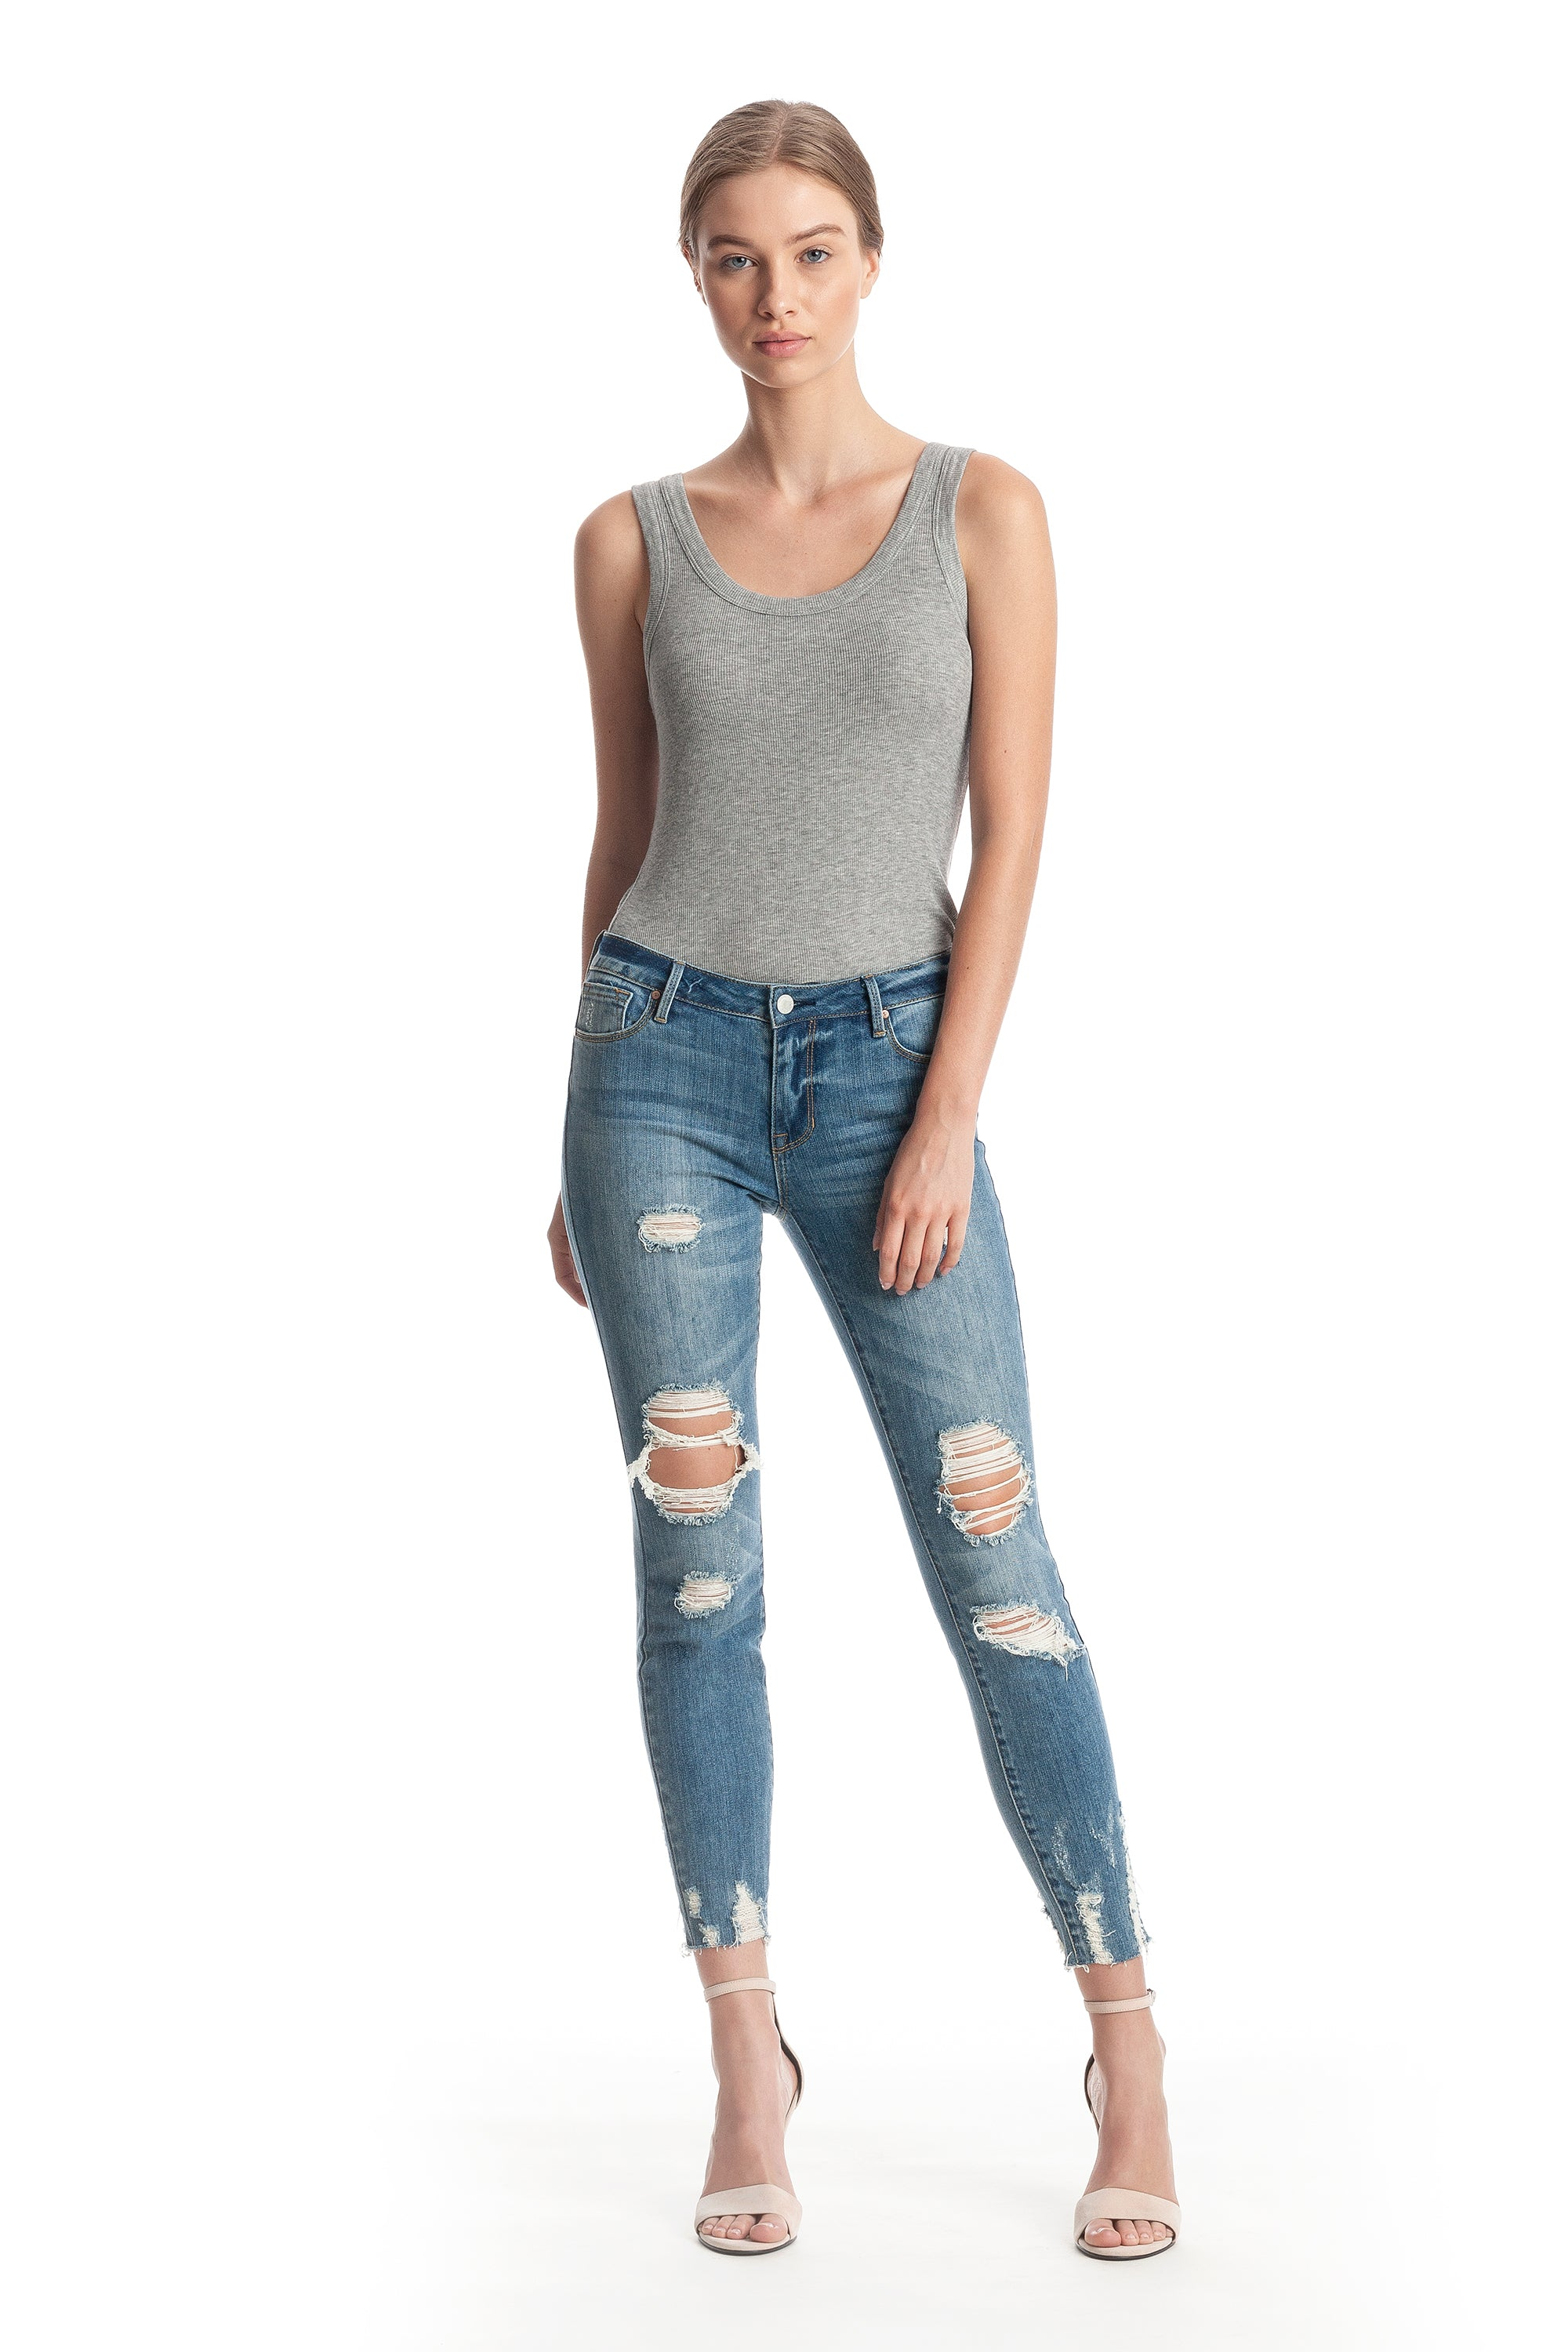 THE ULTRA BABE JEAN